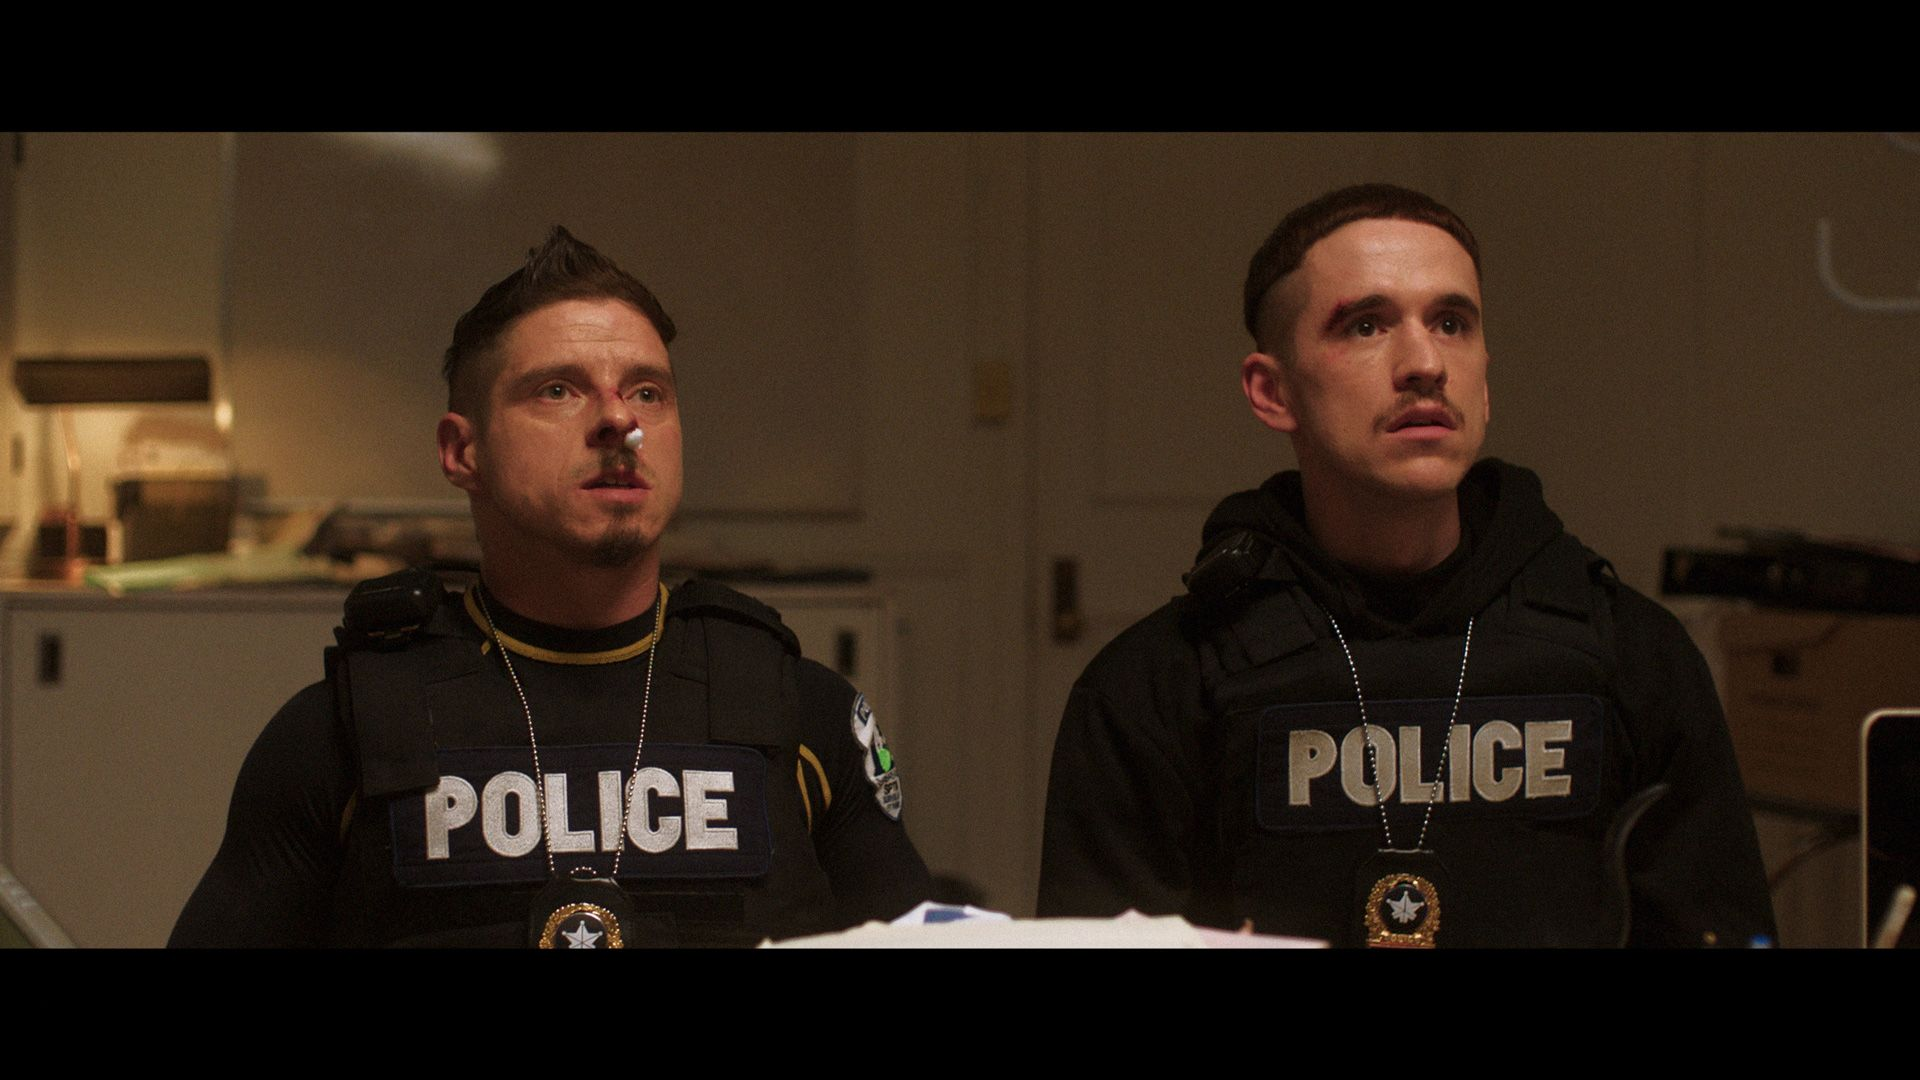 actors Hugolin Chevrette-Landesque and Emile Schneider posing as cops looking beaten up with noses bleeding sitting in their chief's office for TV series La Loi C'est La Loi filmed by Les Gamins for TV5 Unis